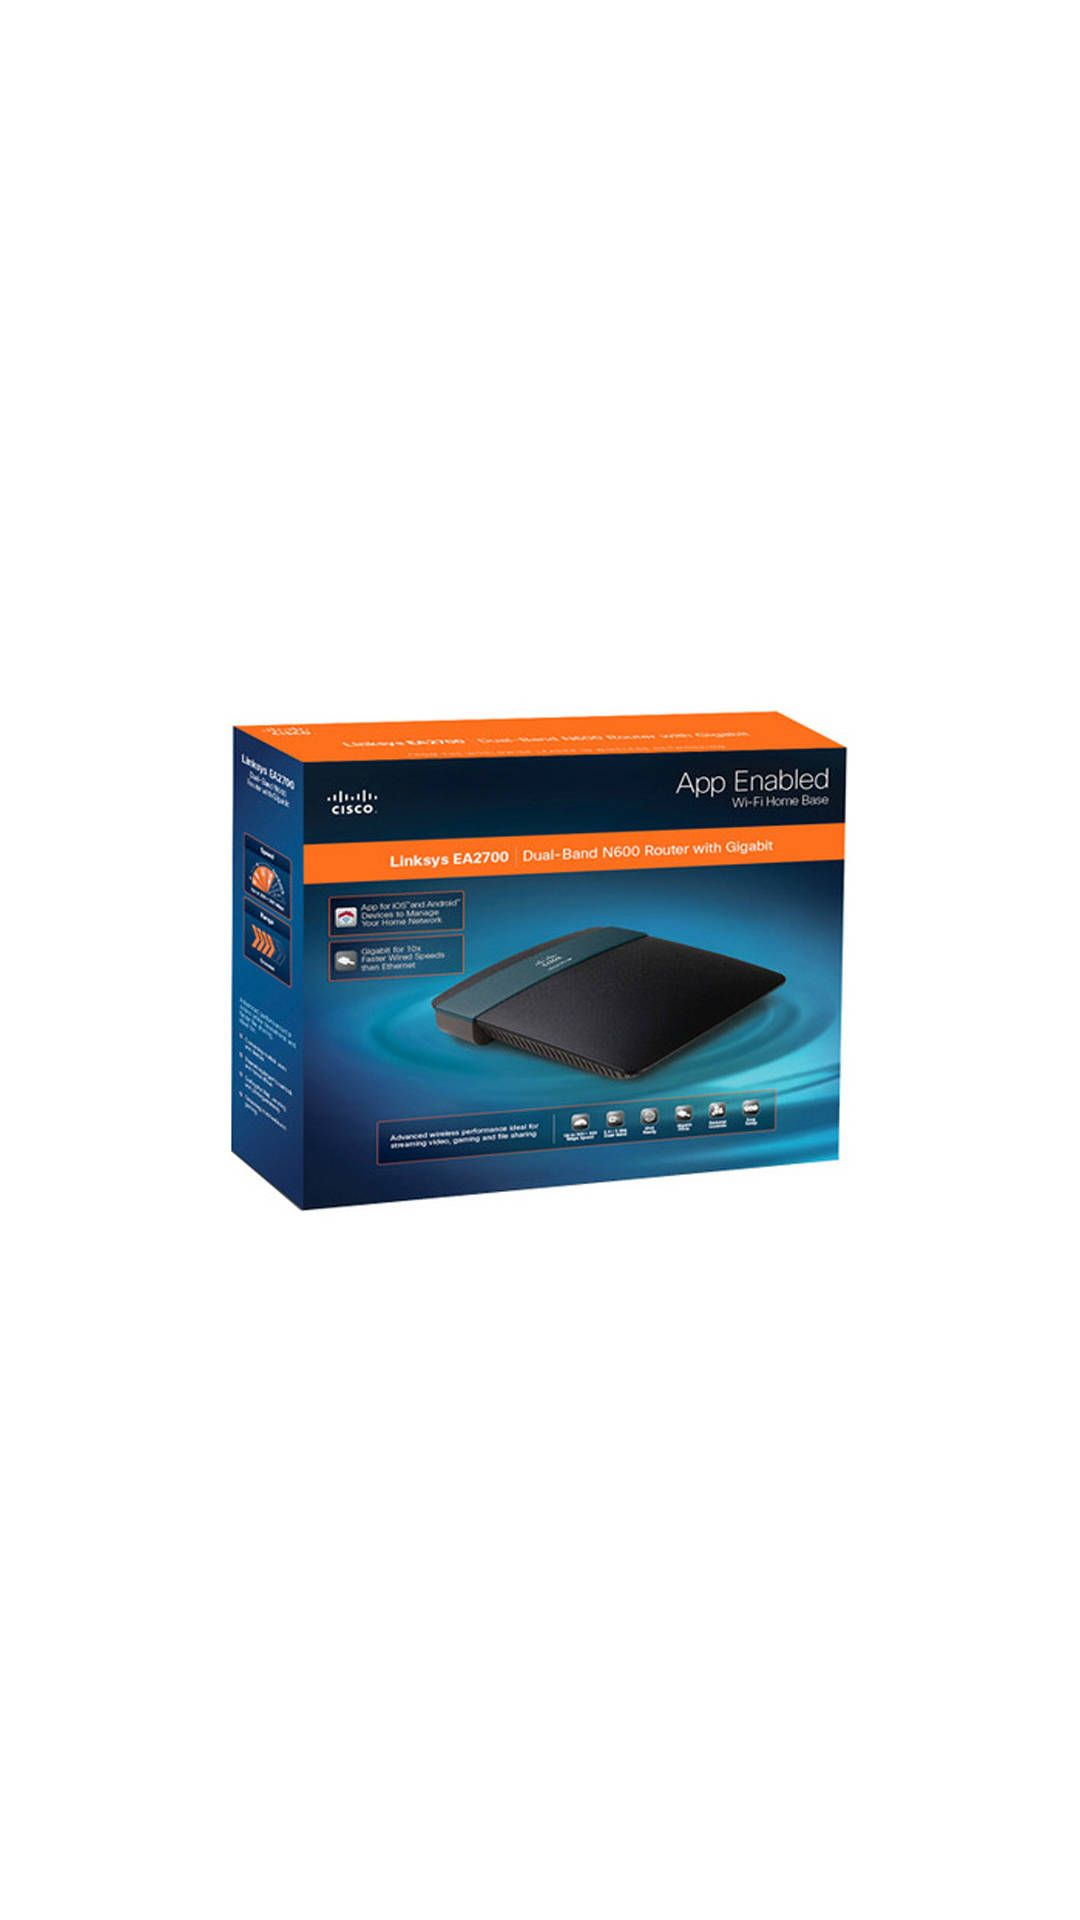 Features of Linksys EA2700 300 Mbps Wireless without Modem